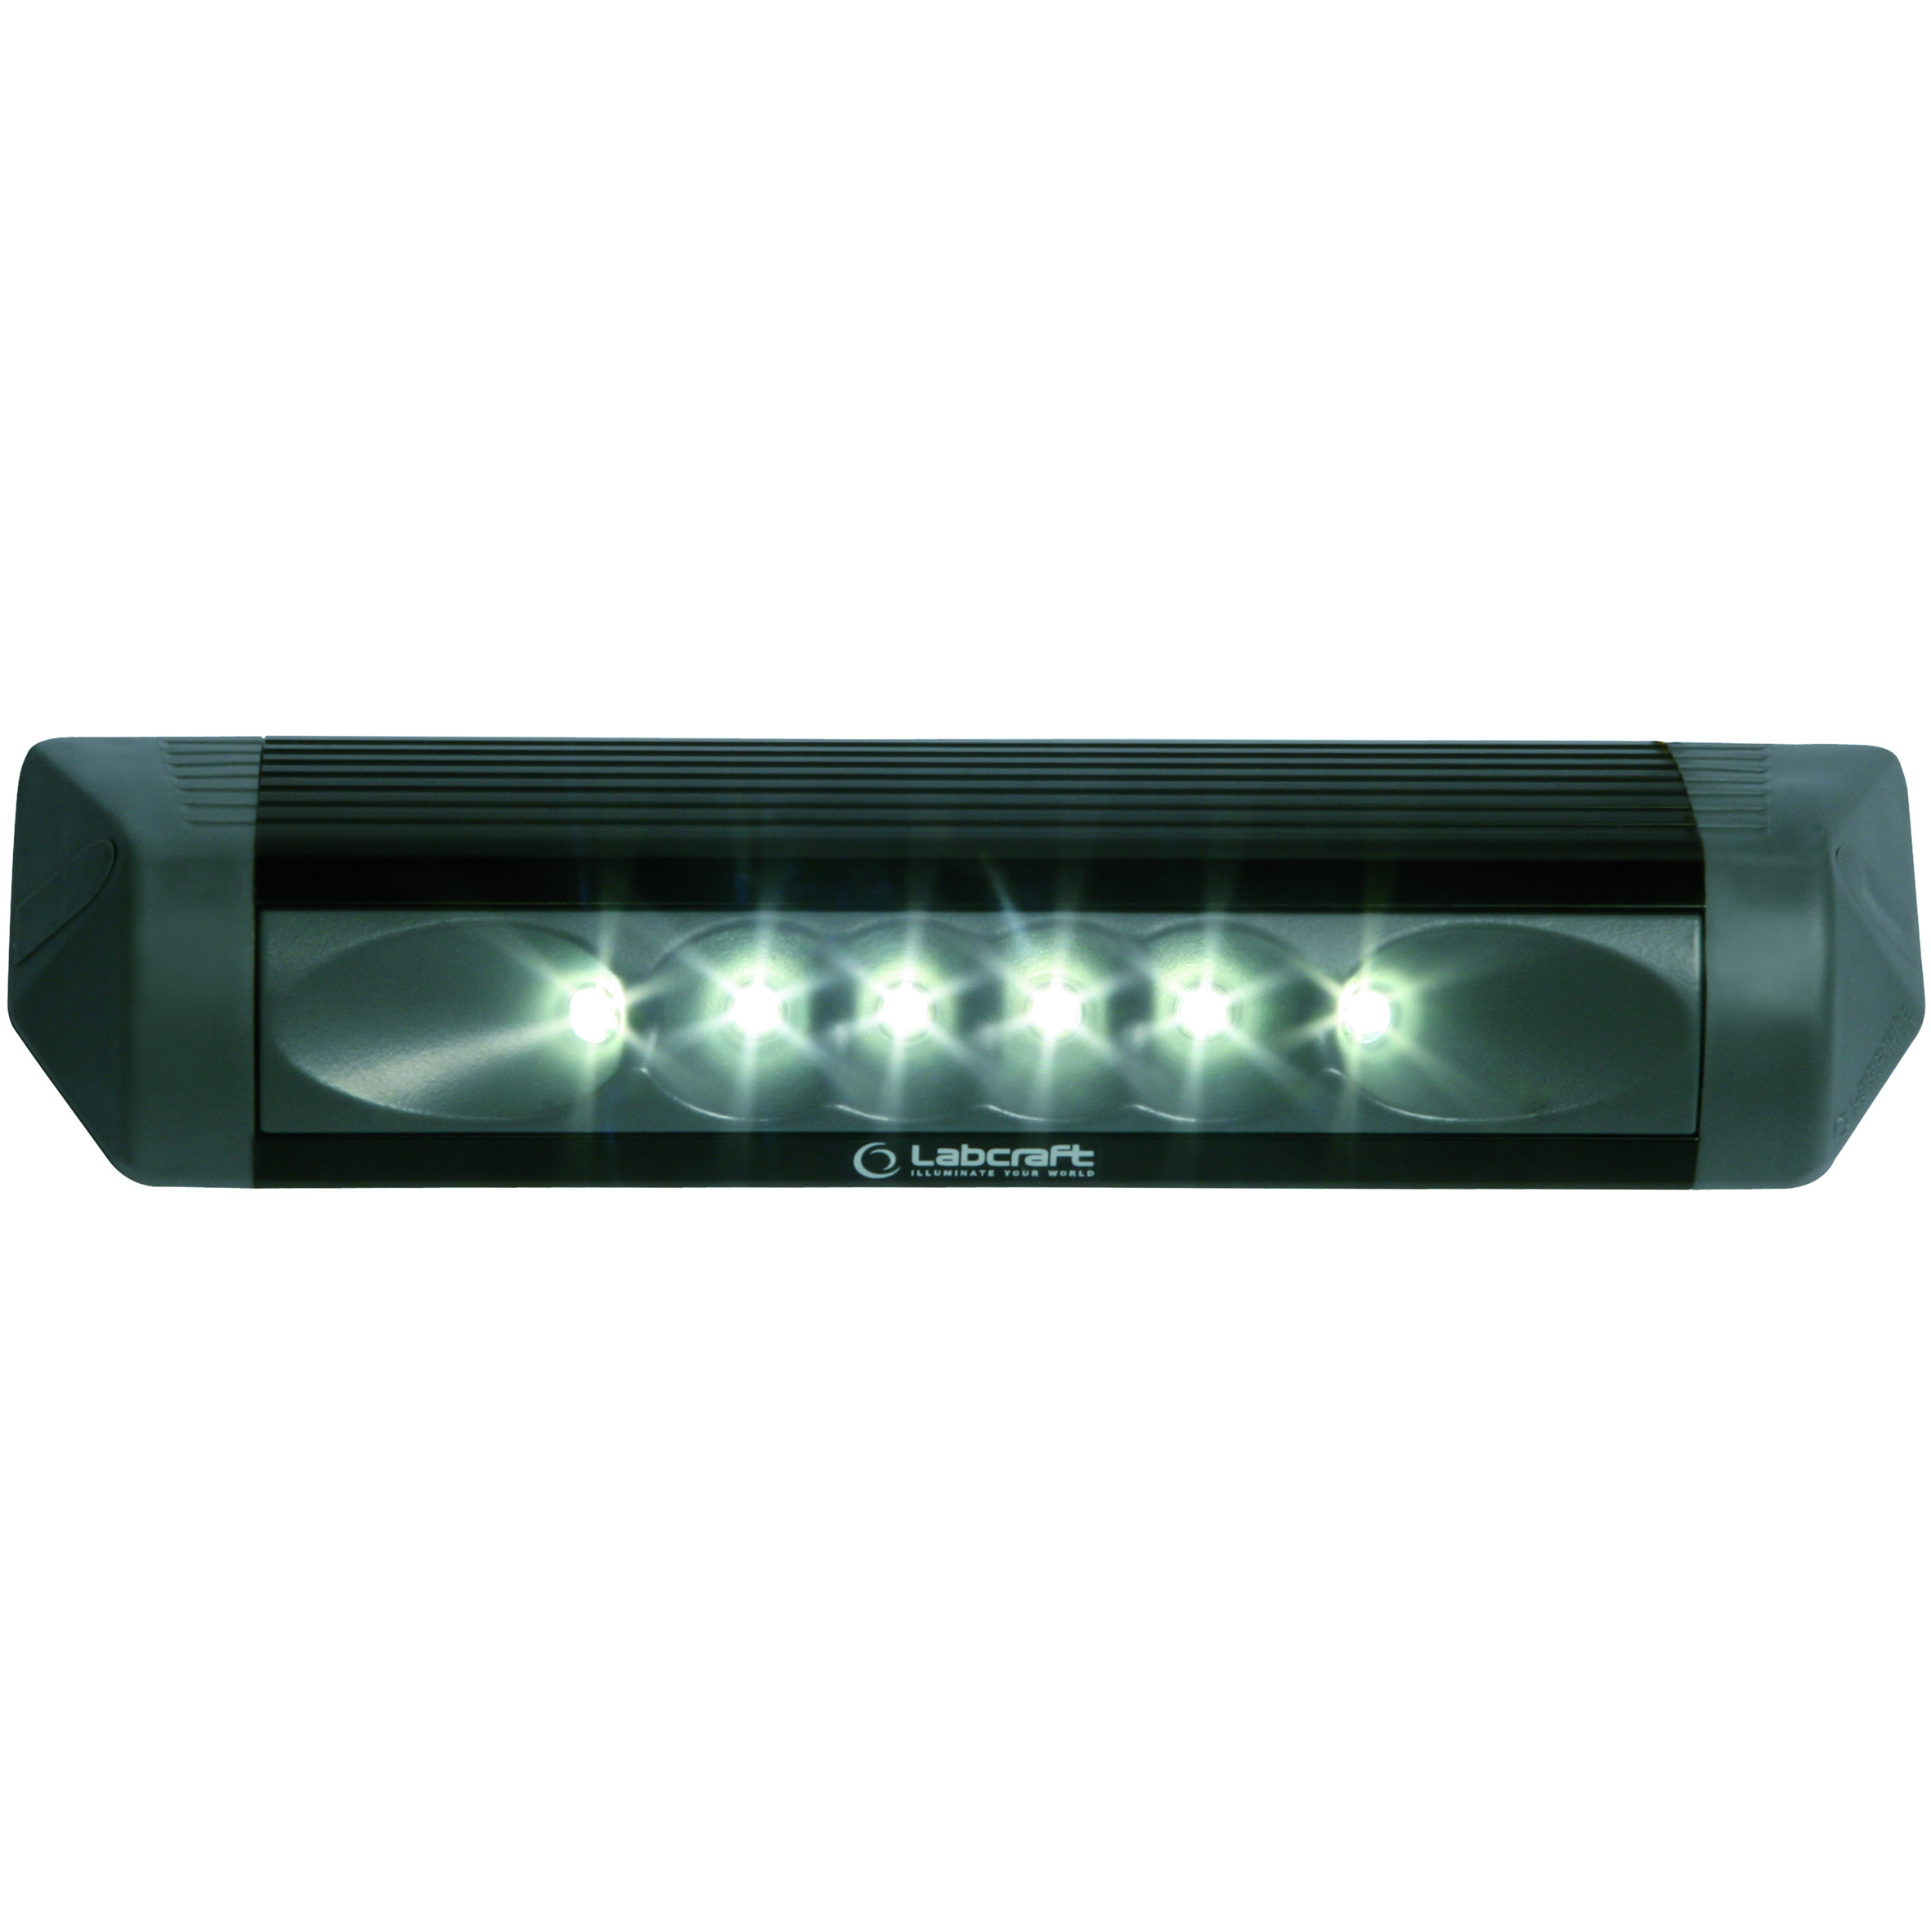 LED Scenelight - 12/24v - SI6_6-3MV